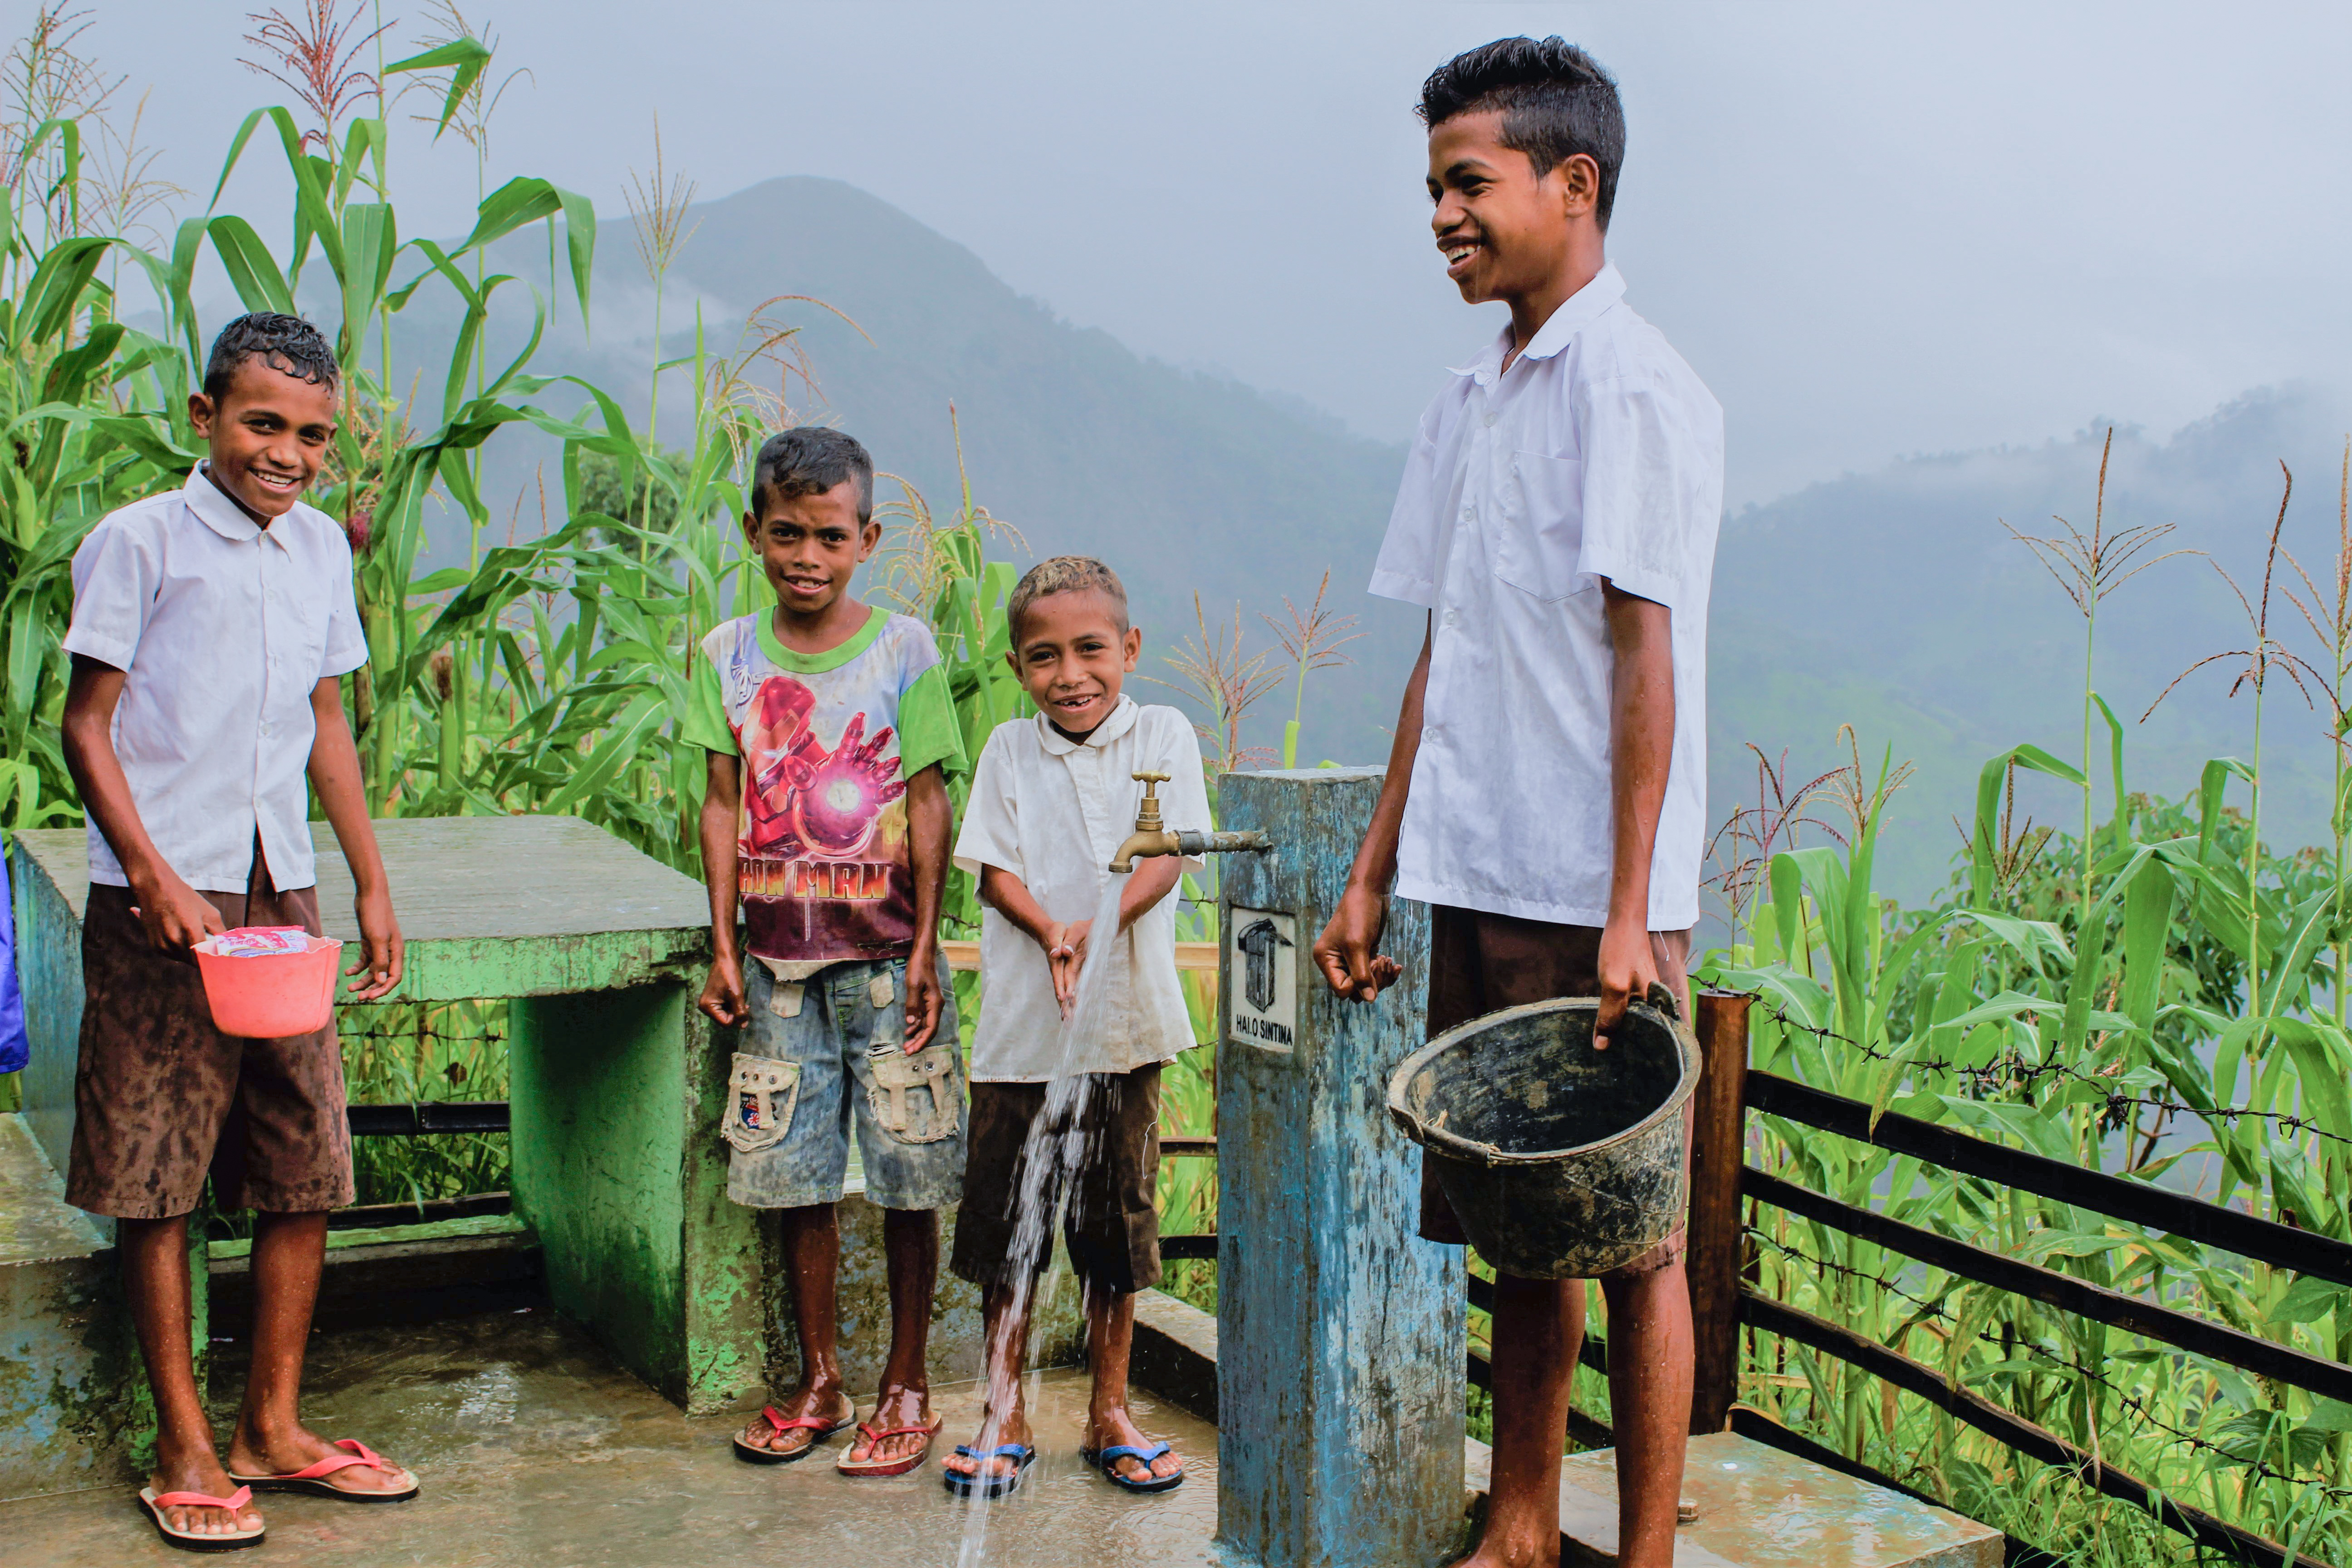 Kids in Timor-Leste collect water from the new water point